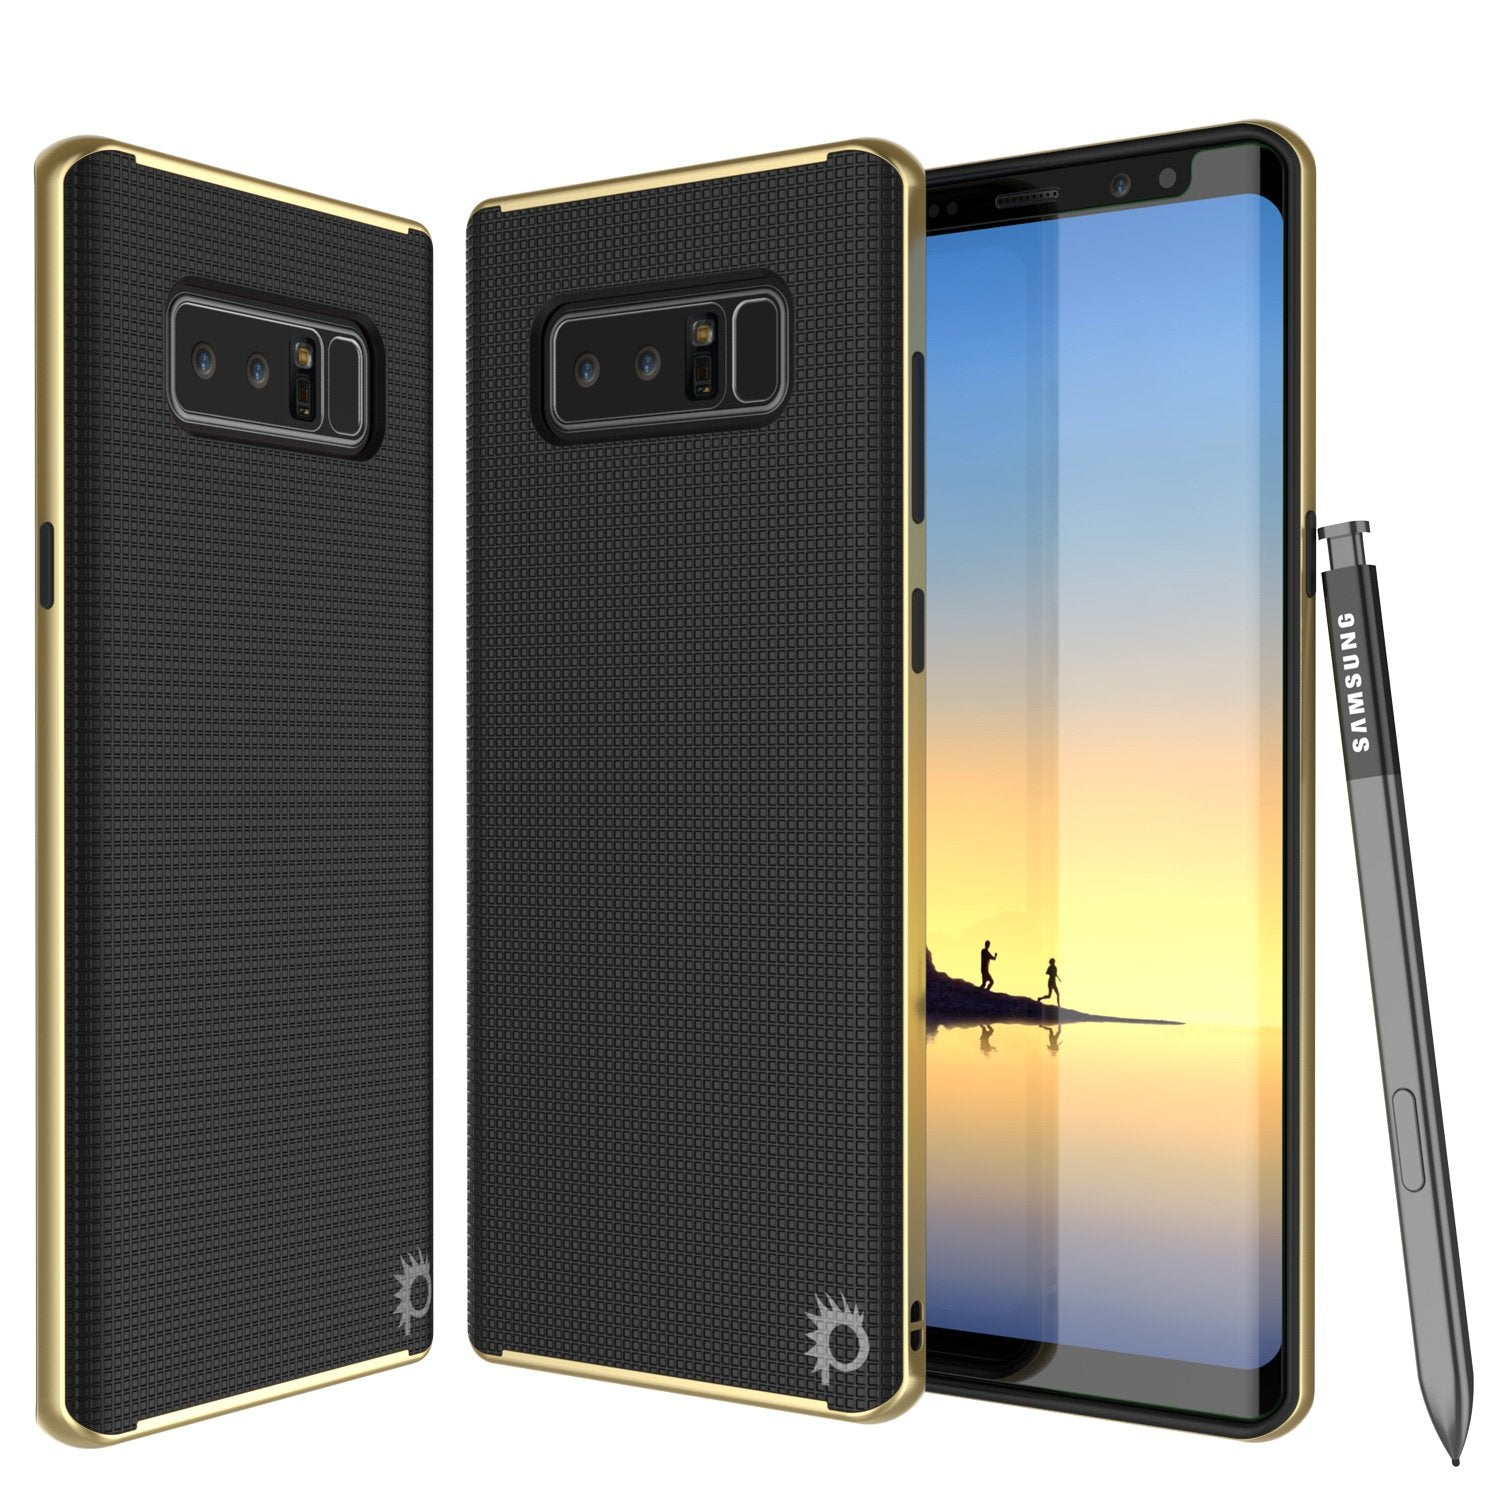 Galaxy Note 8 Case, PunkCase [Stealth Series] Hybrid 3-Piece Shockproof Dual Layer Cover [Non-Slip] [Soft TPU + PC Bumper] with PUNKSHIELD Screen Protector for Samsung Note 8 [Gold]